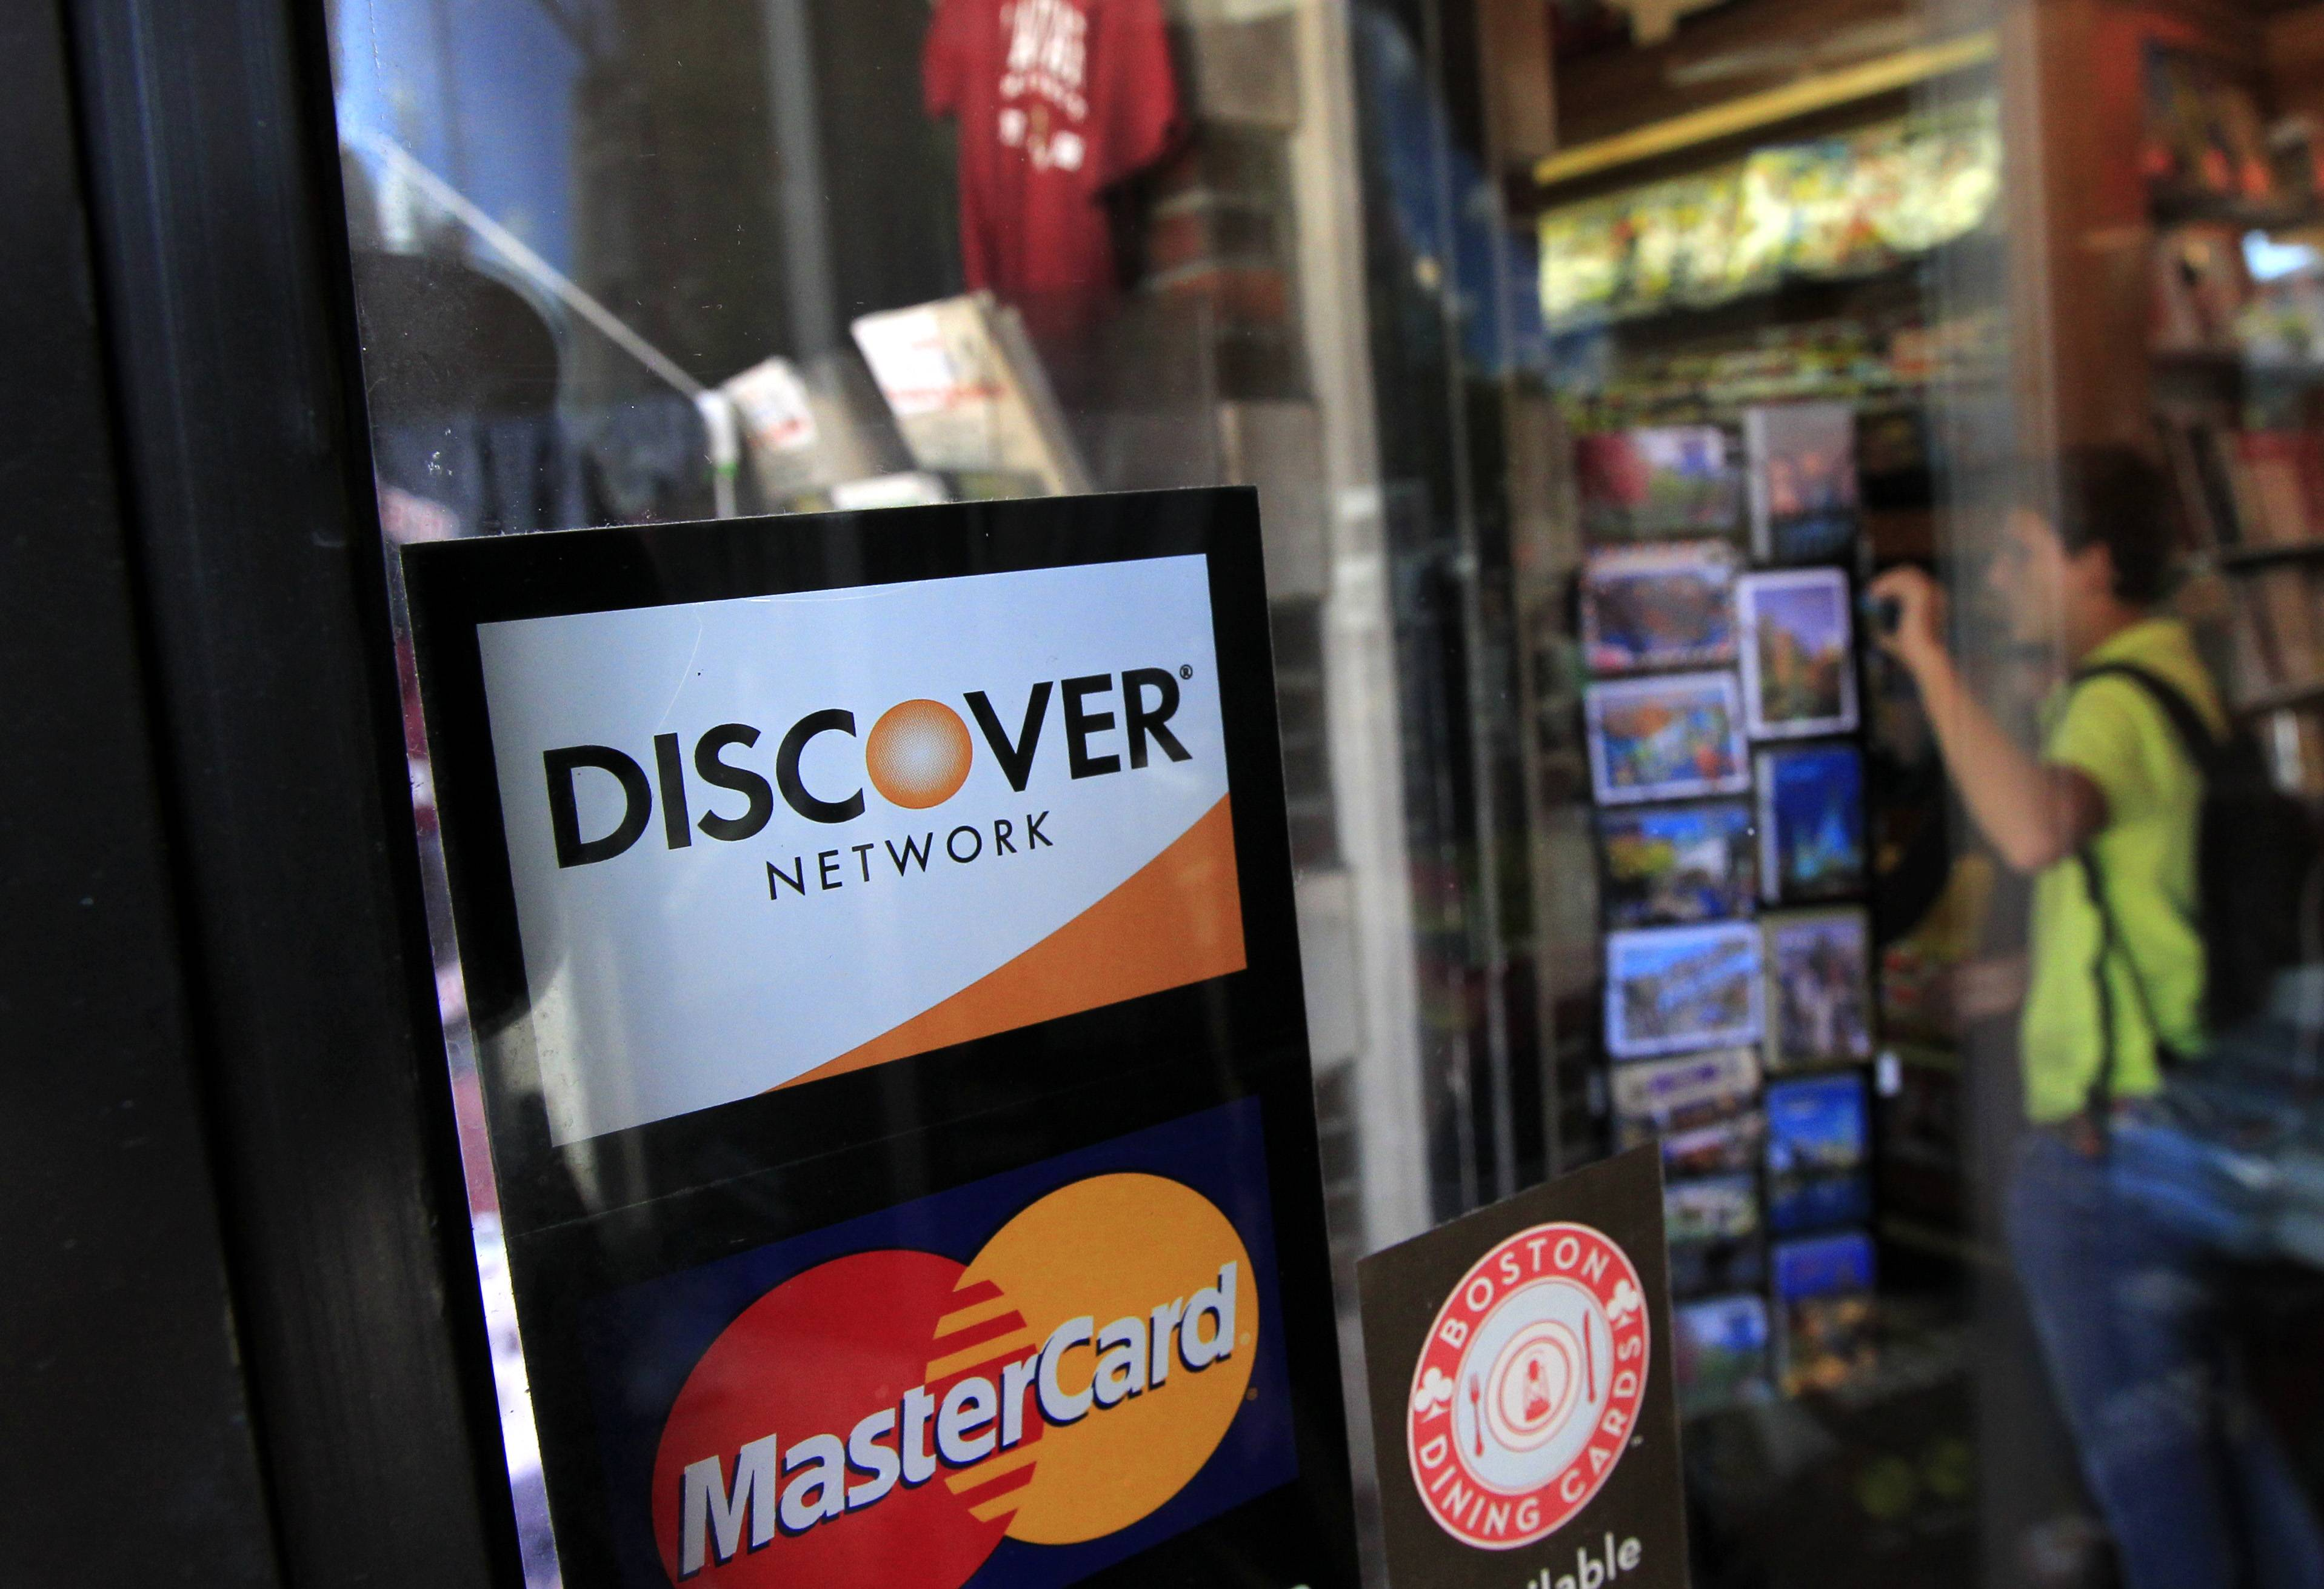 Riverwoods-based Discover Financial Services' net income grew 7 percent in the second quarter as credit card spending and overall loans increased from a year ago. The results beat Wall Street's expectations.